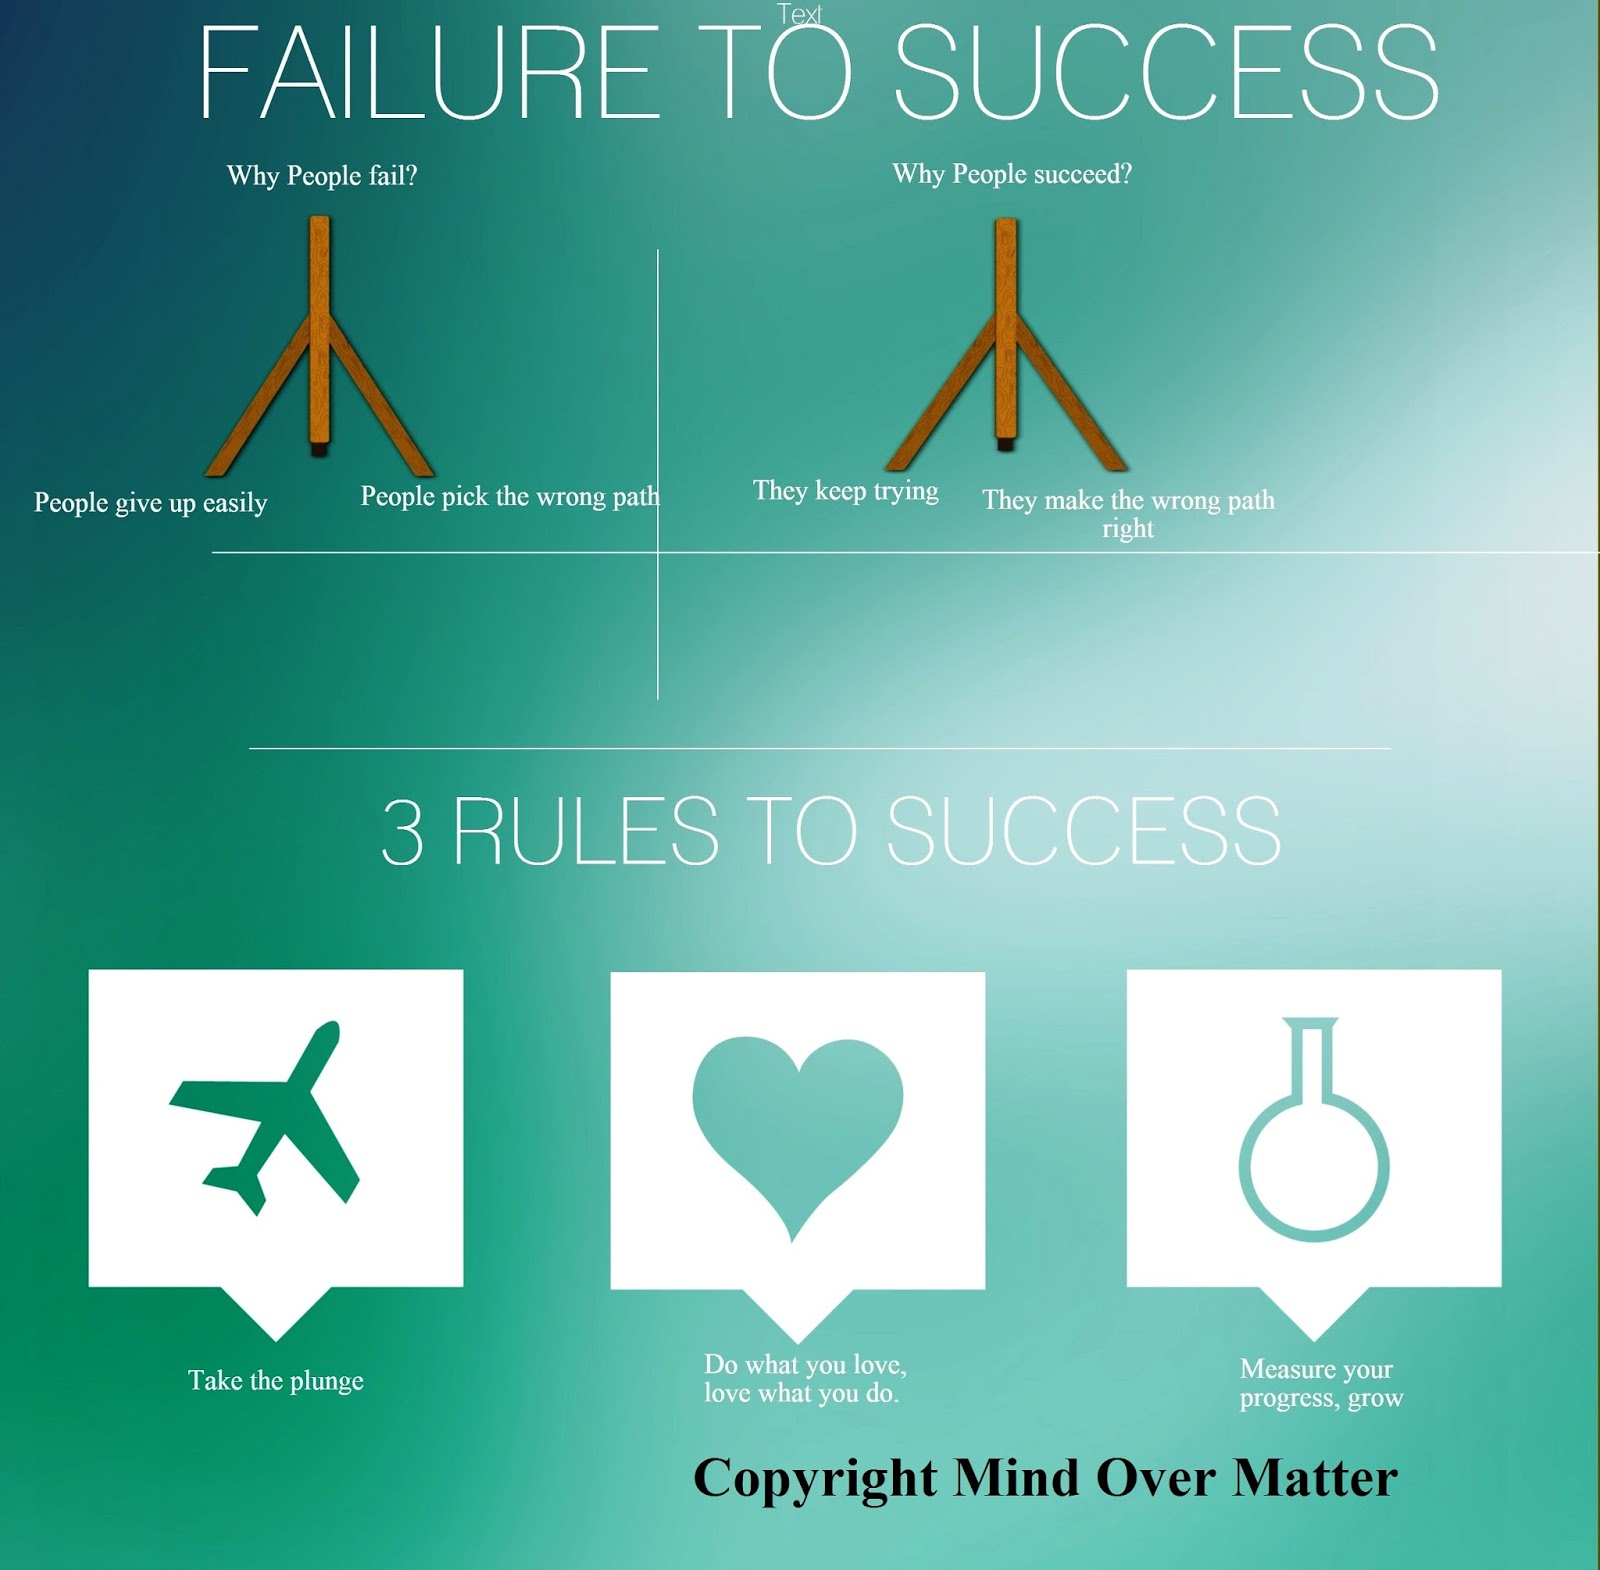 "failure to success It's no secret that our worst fear is often failure but what if failure was actually a good thing ""failure is success in progress,"" albert einstein once said the great scientist was on to something encountering our fears and failures prompts the most necessary changes in our lives and our."